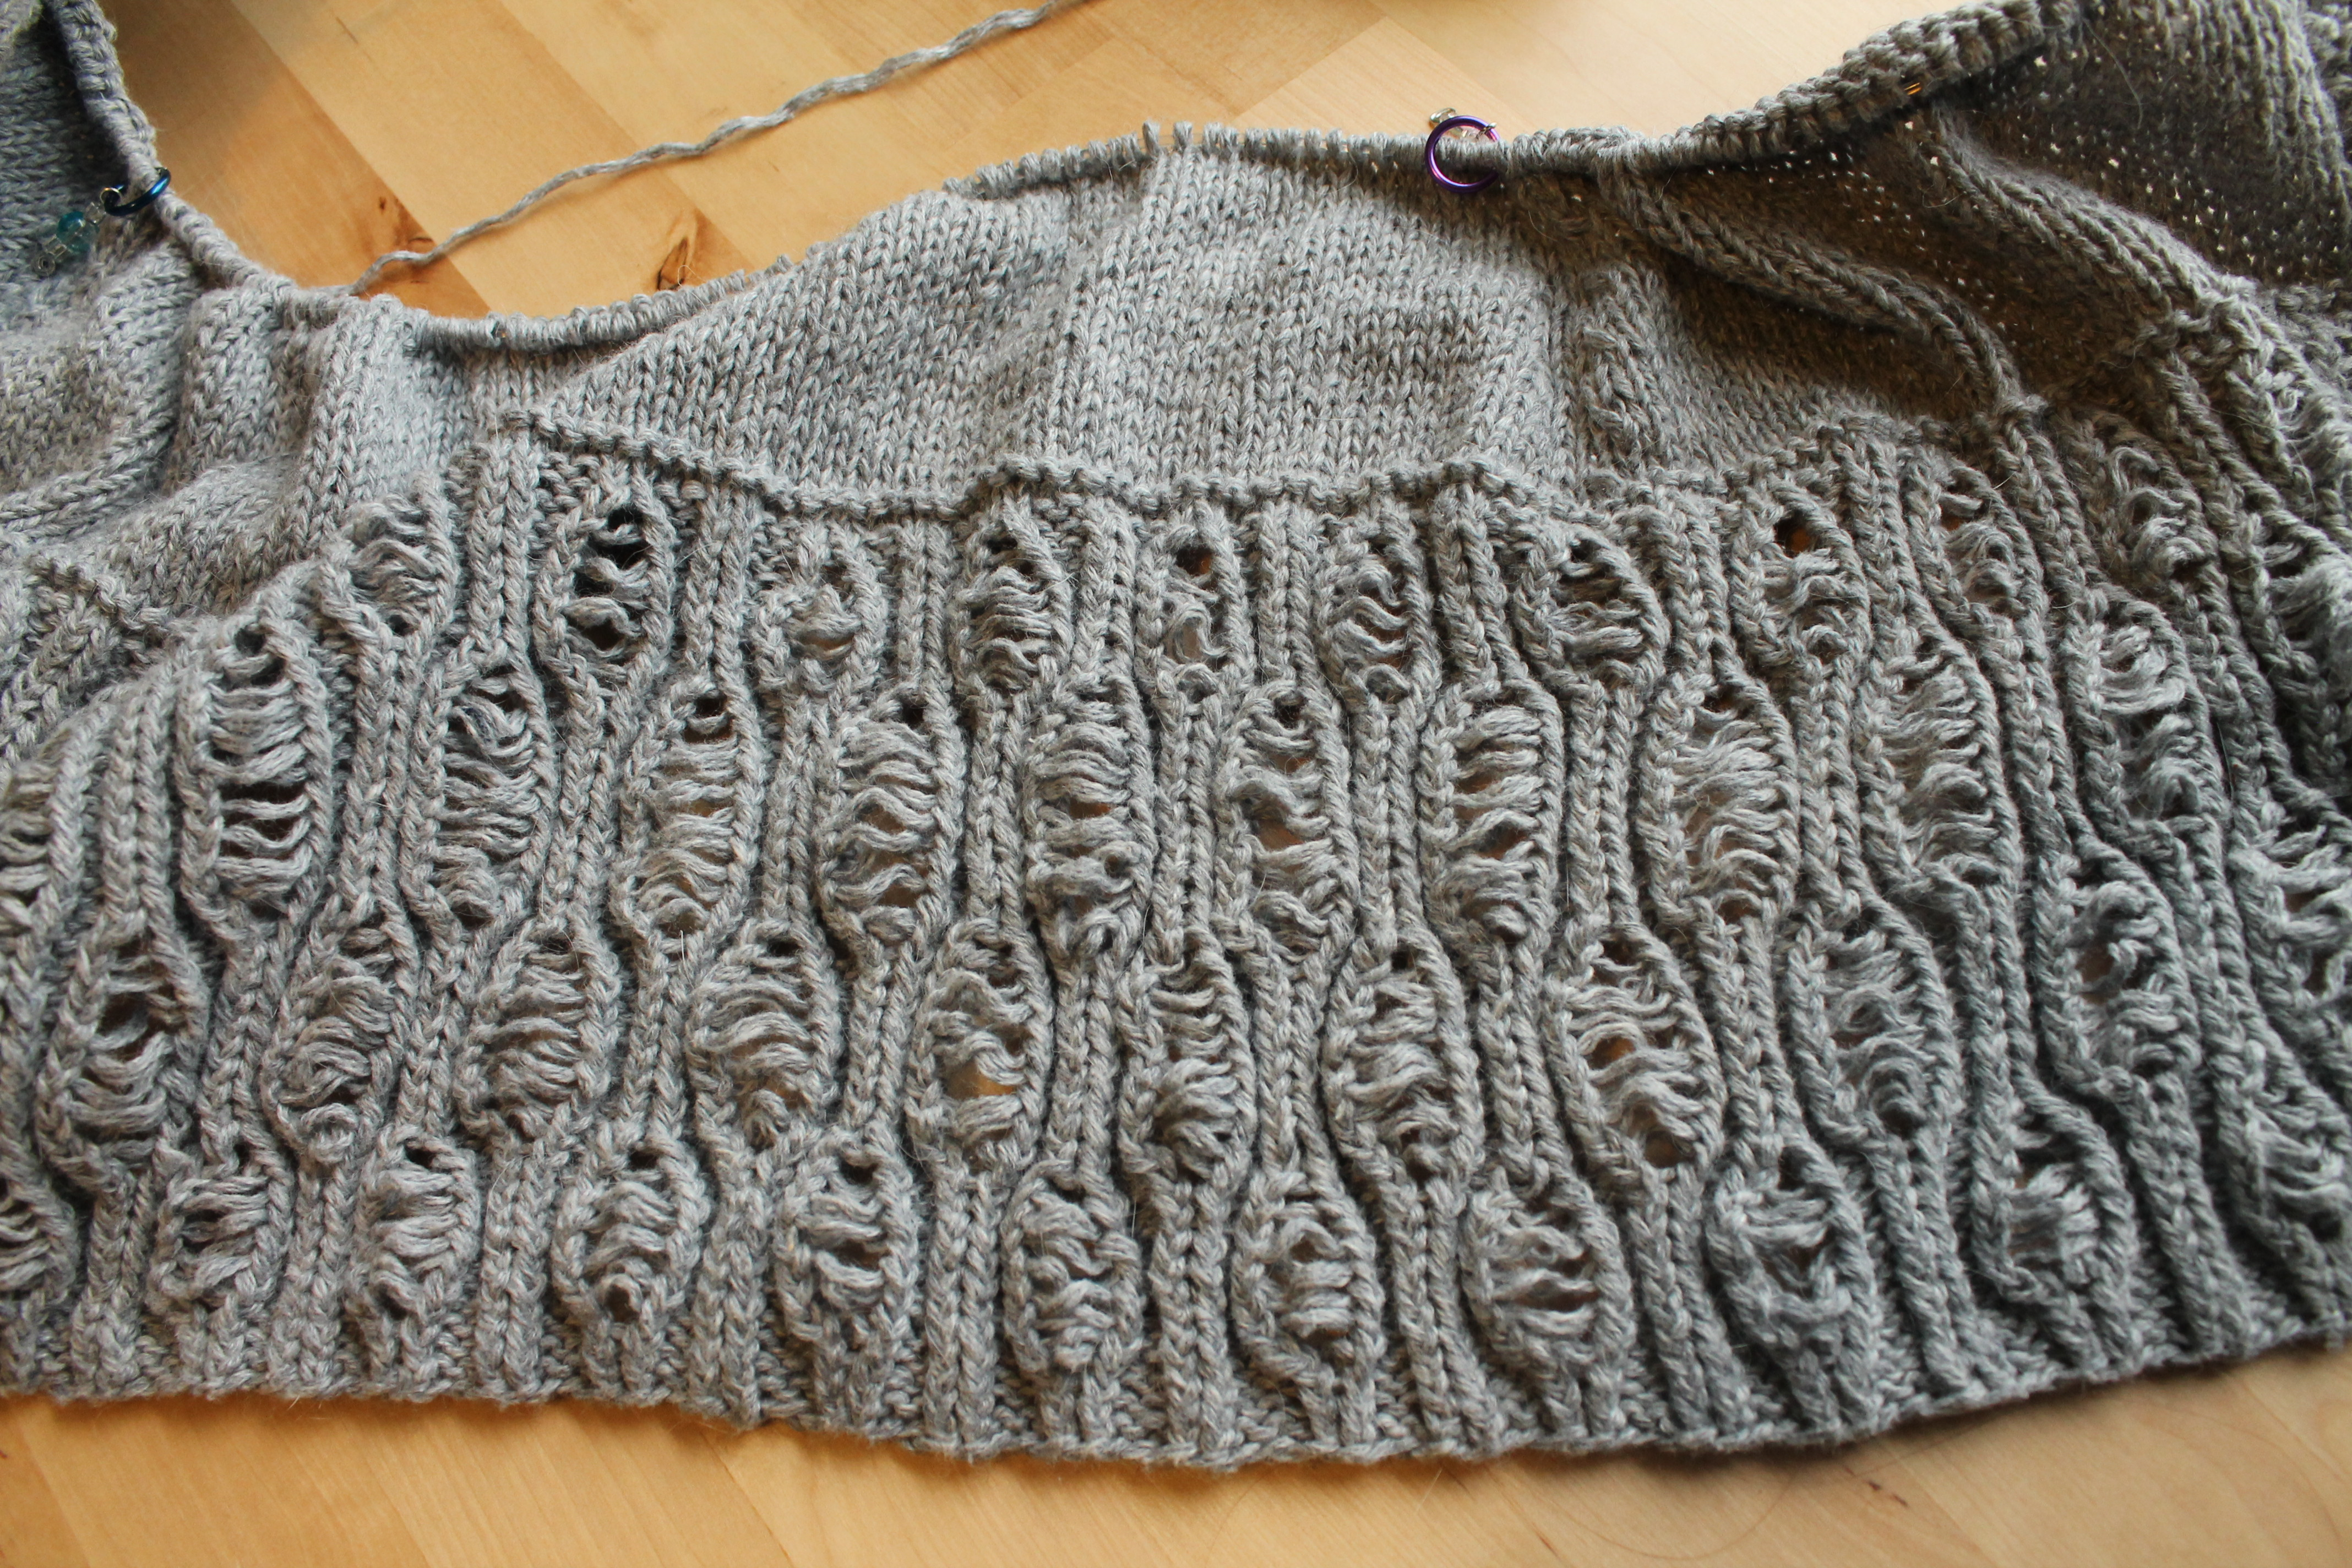 Roheline cardigan (in progress)